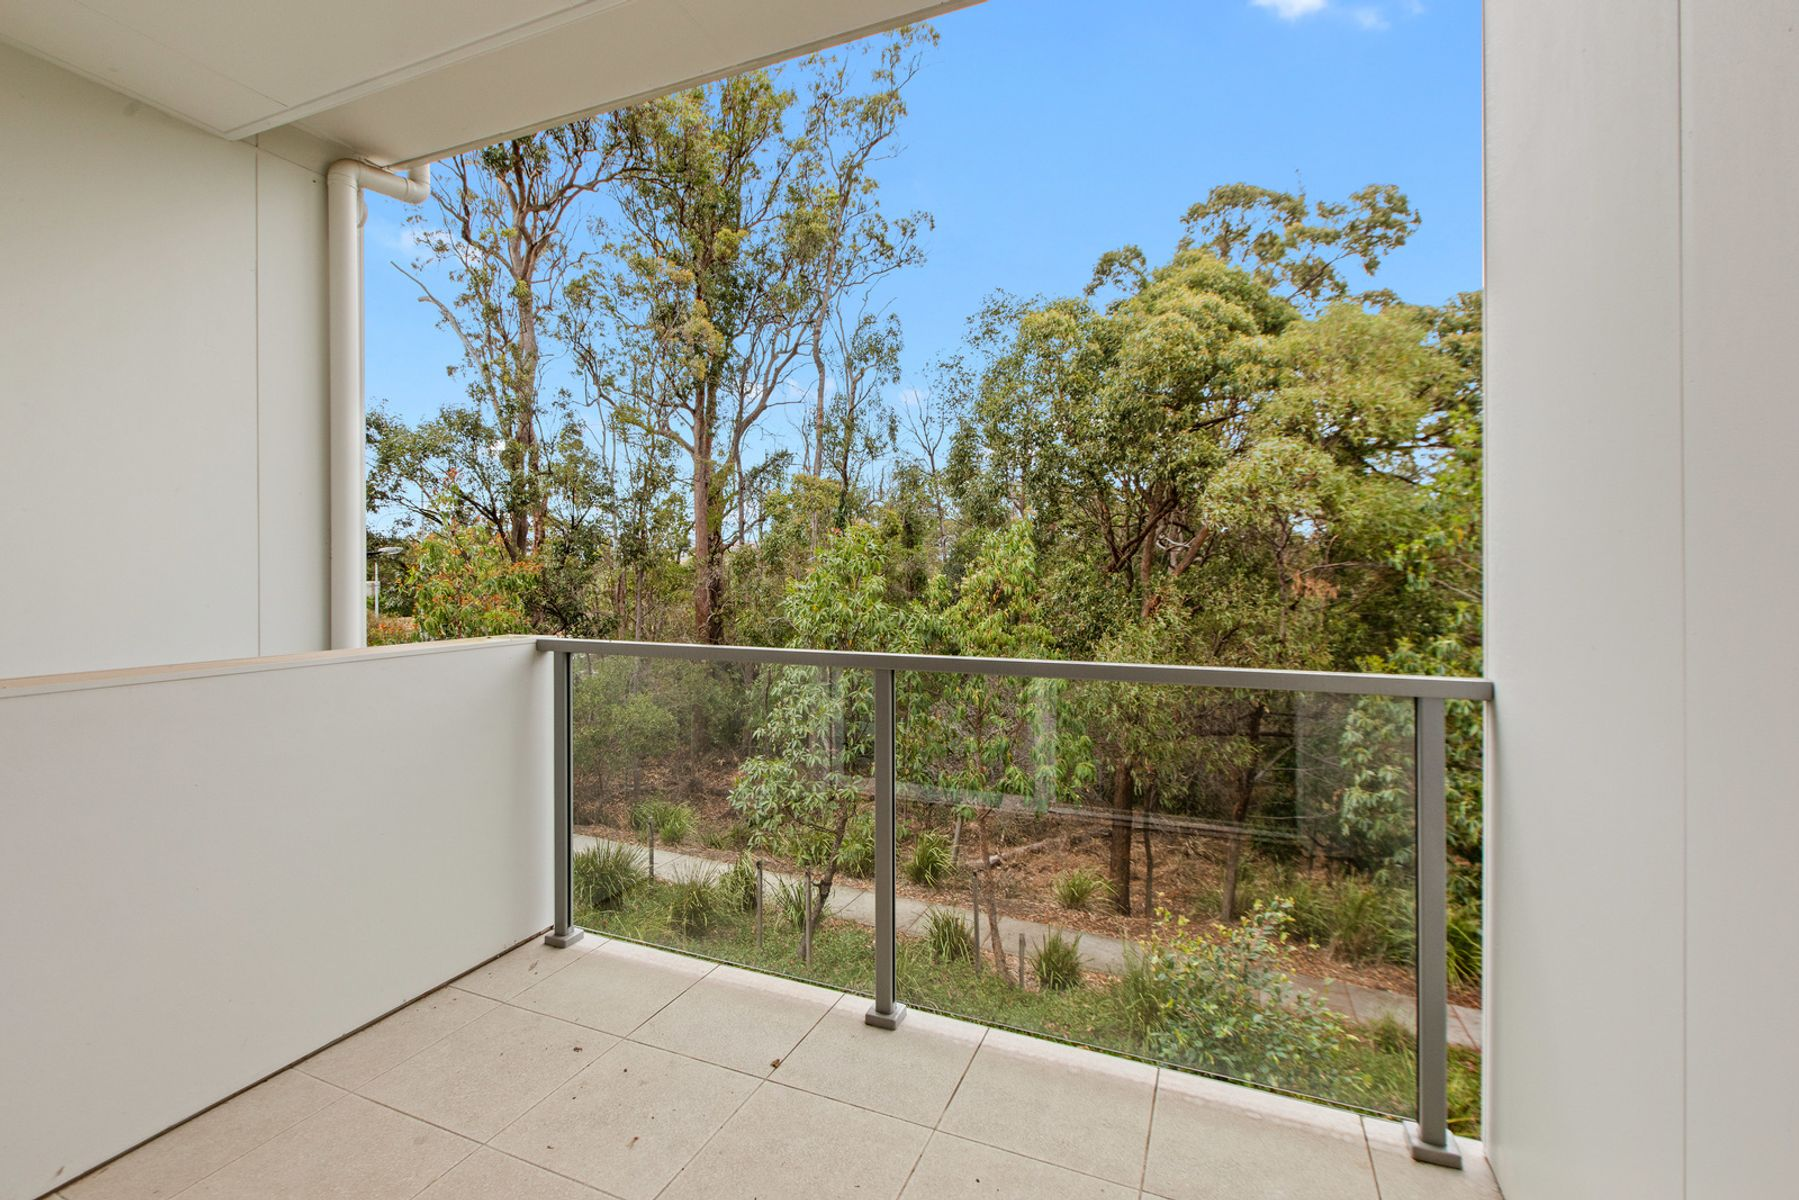 46 Platypus Circuit, Rochedale, QLD 4123